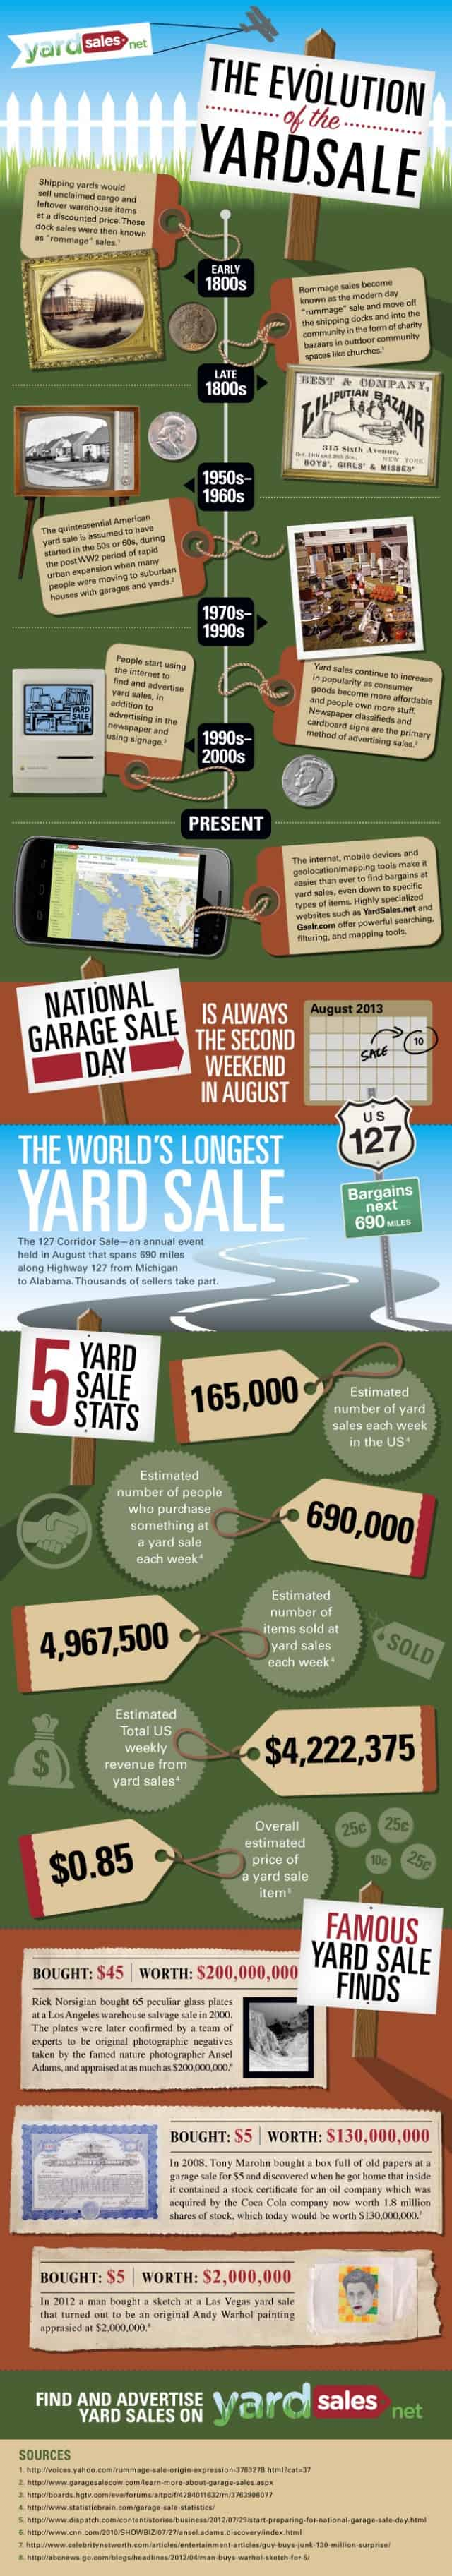 Evolution of the Yard Sale Infographic